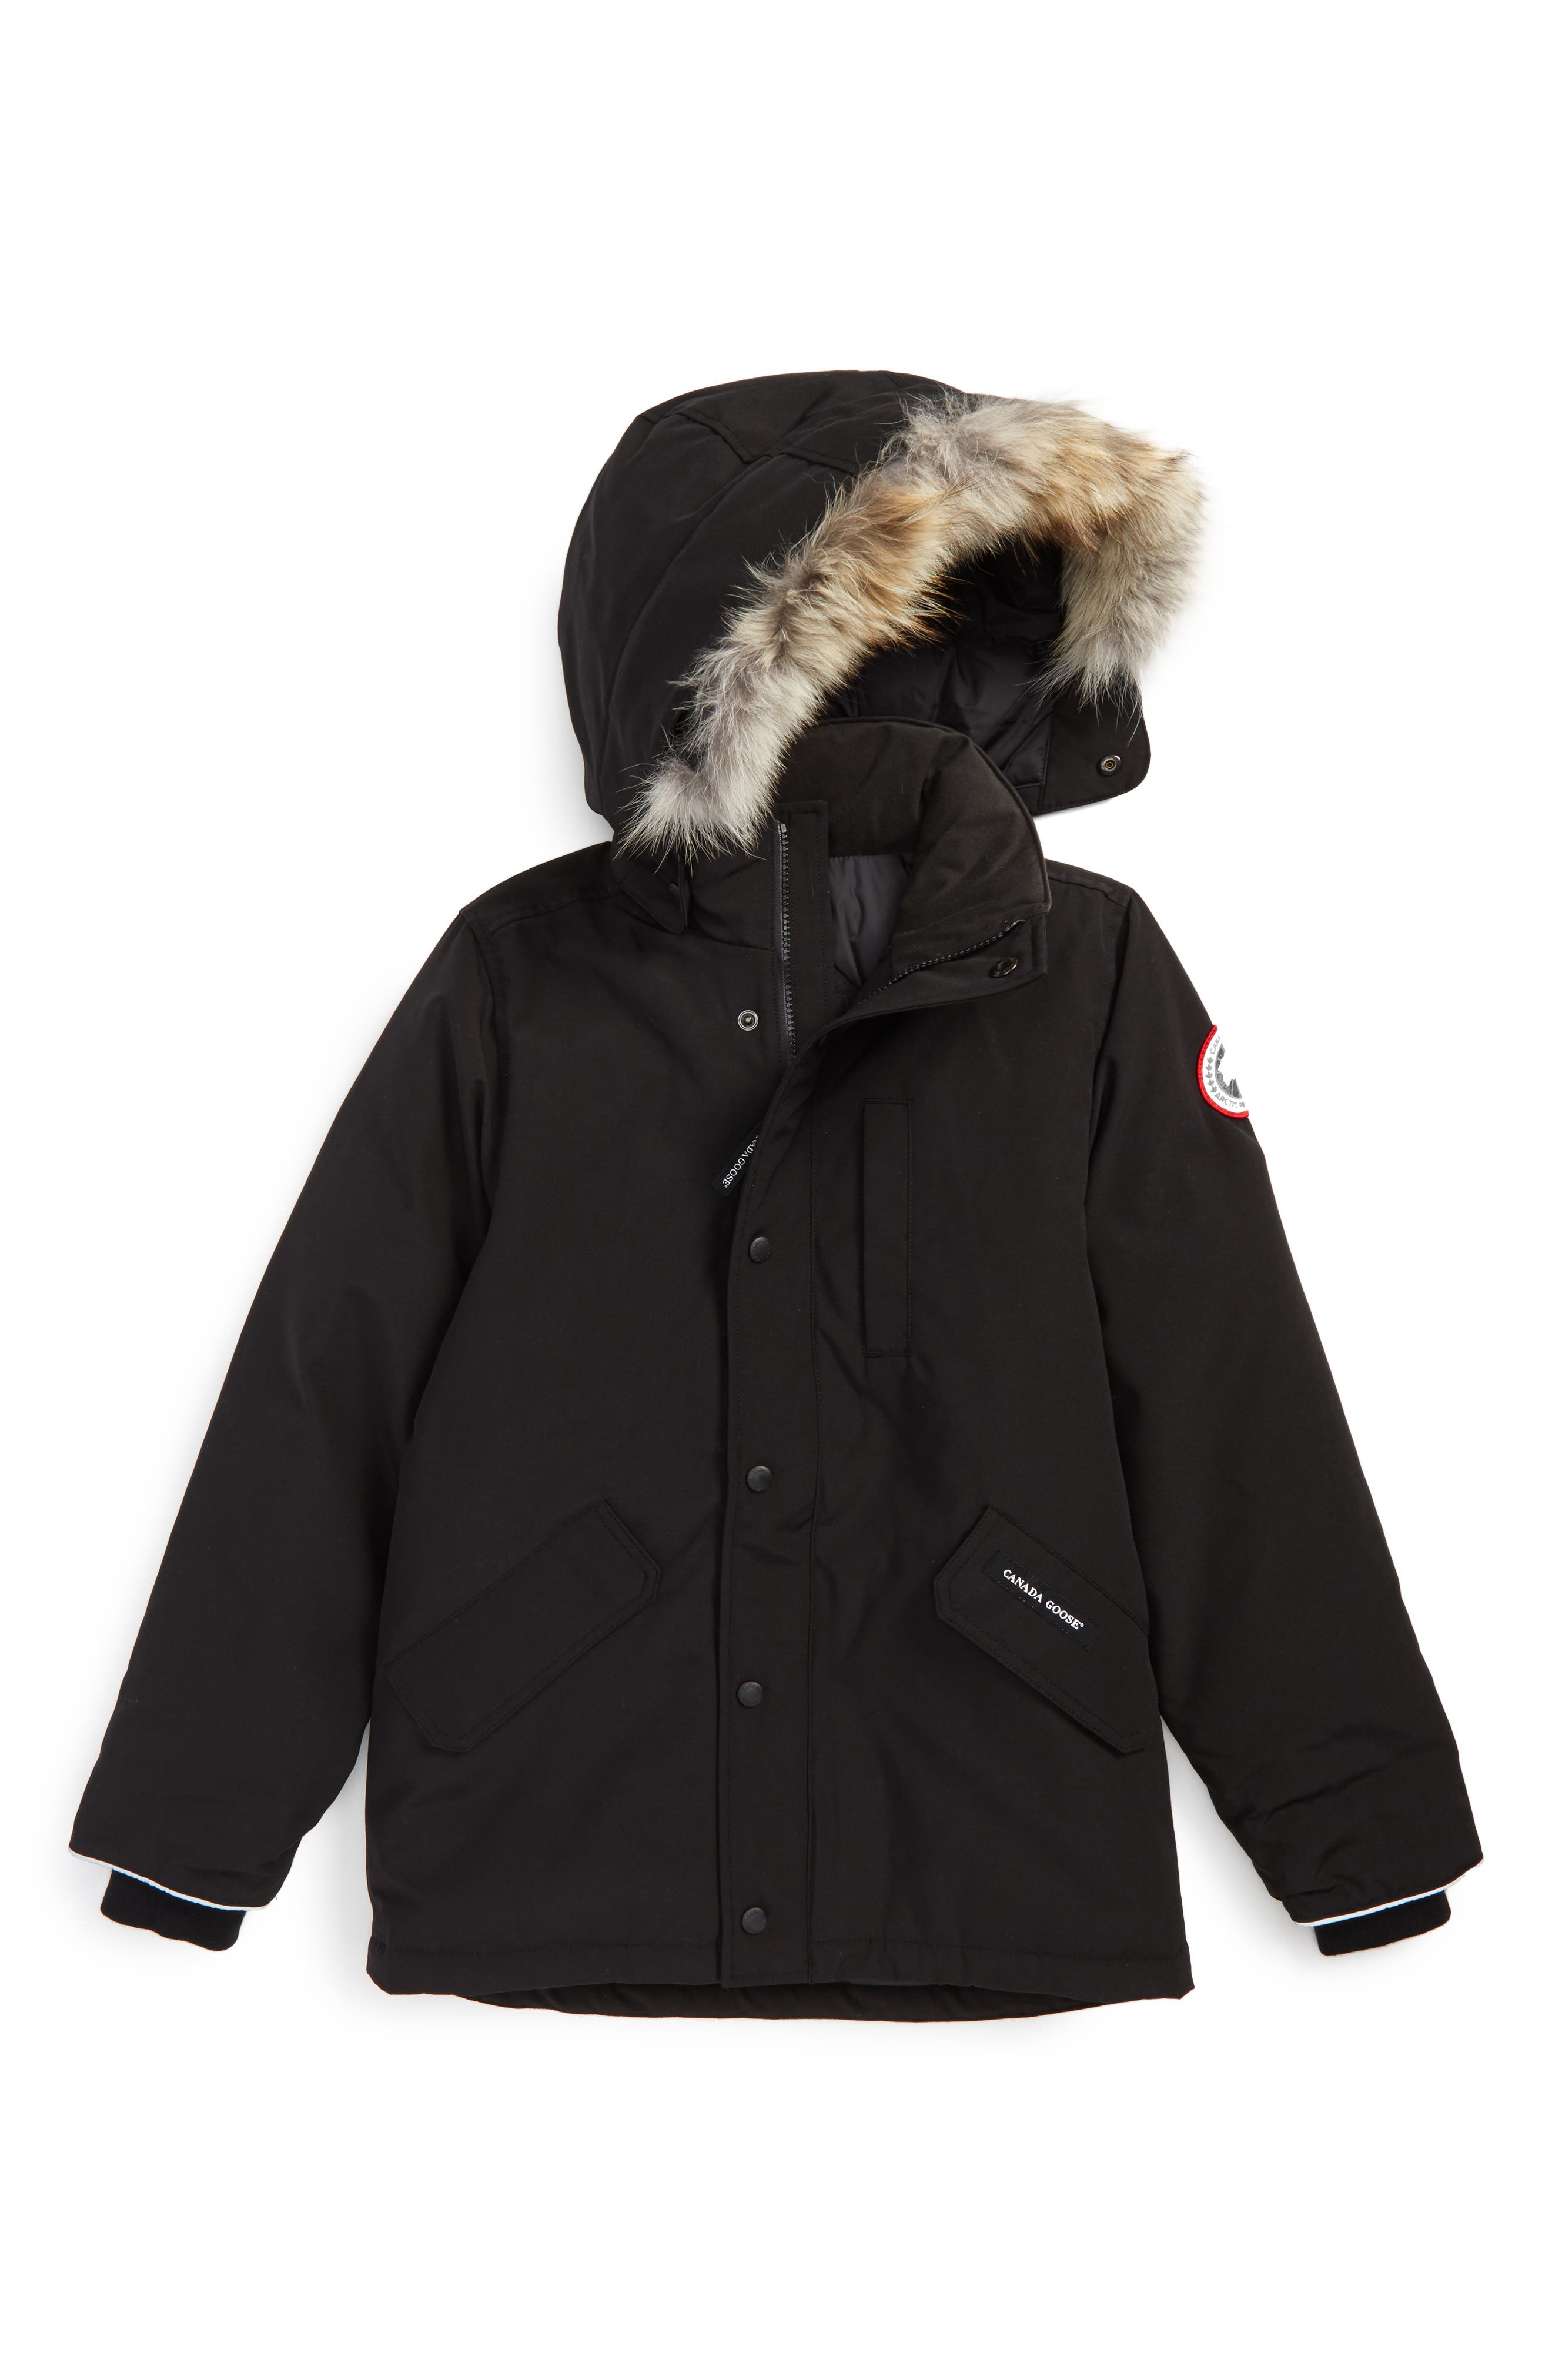 Alternate Image 1 Selected - Canada Goose 'Logan' Down Parka with Genuine Coyote Fur Trim (Little Kid & Big Kid)